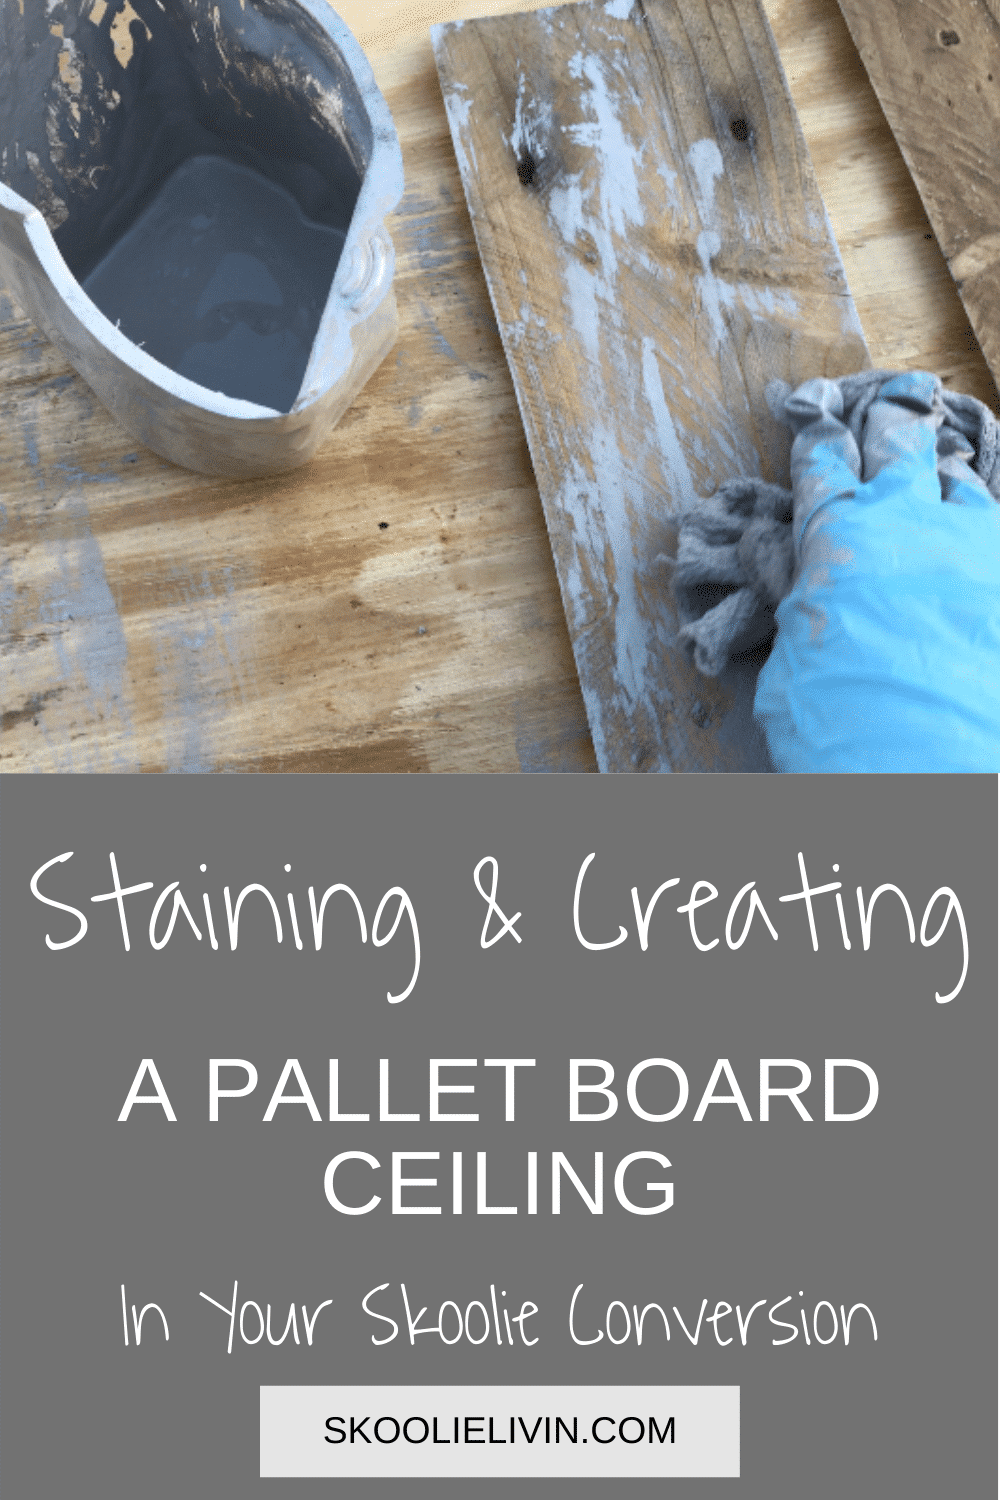 Staining & Creating a Pallet Board Ceiling In Your Skoolie Conversion